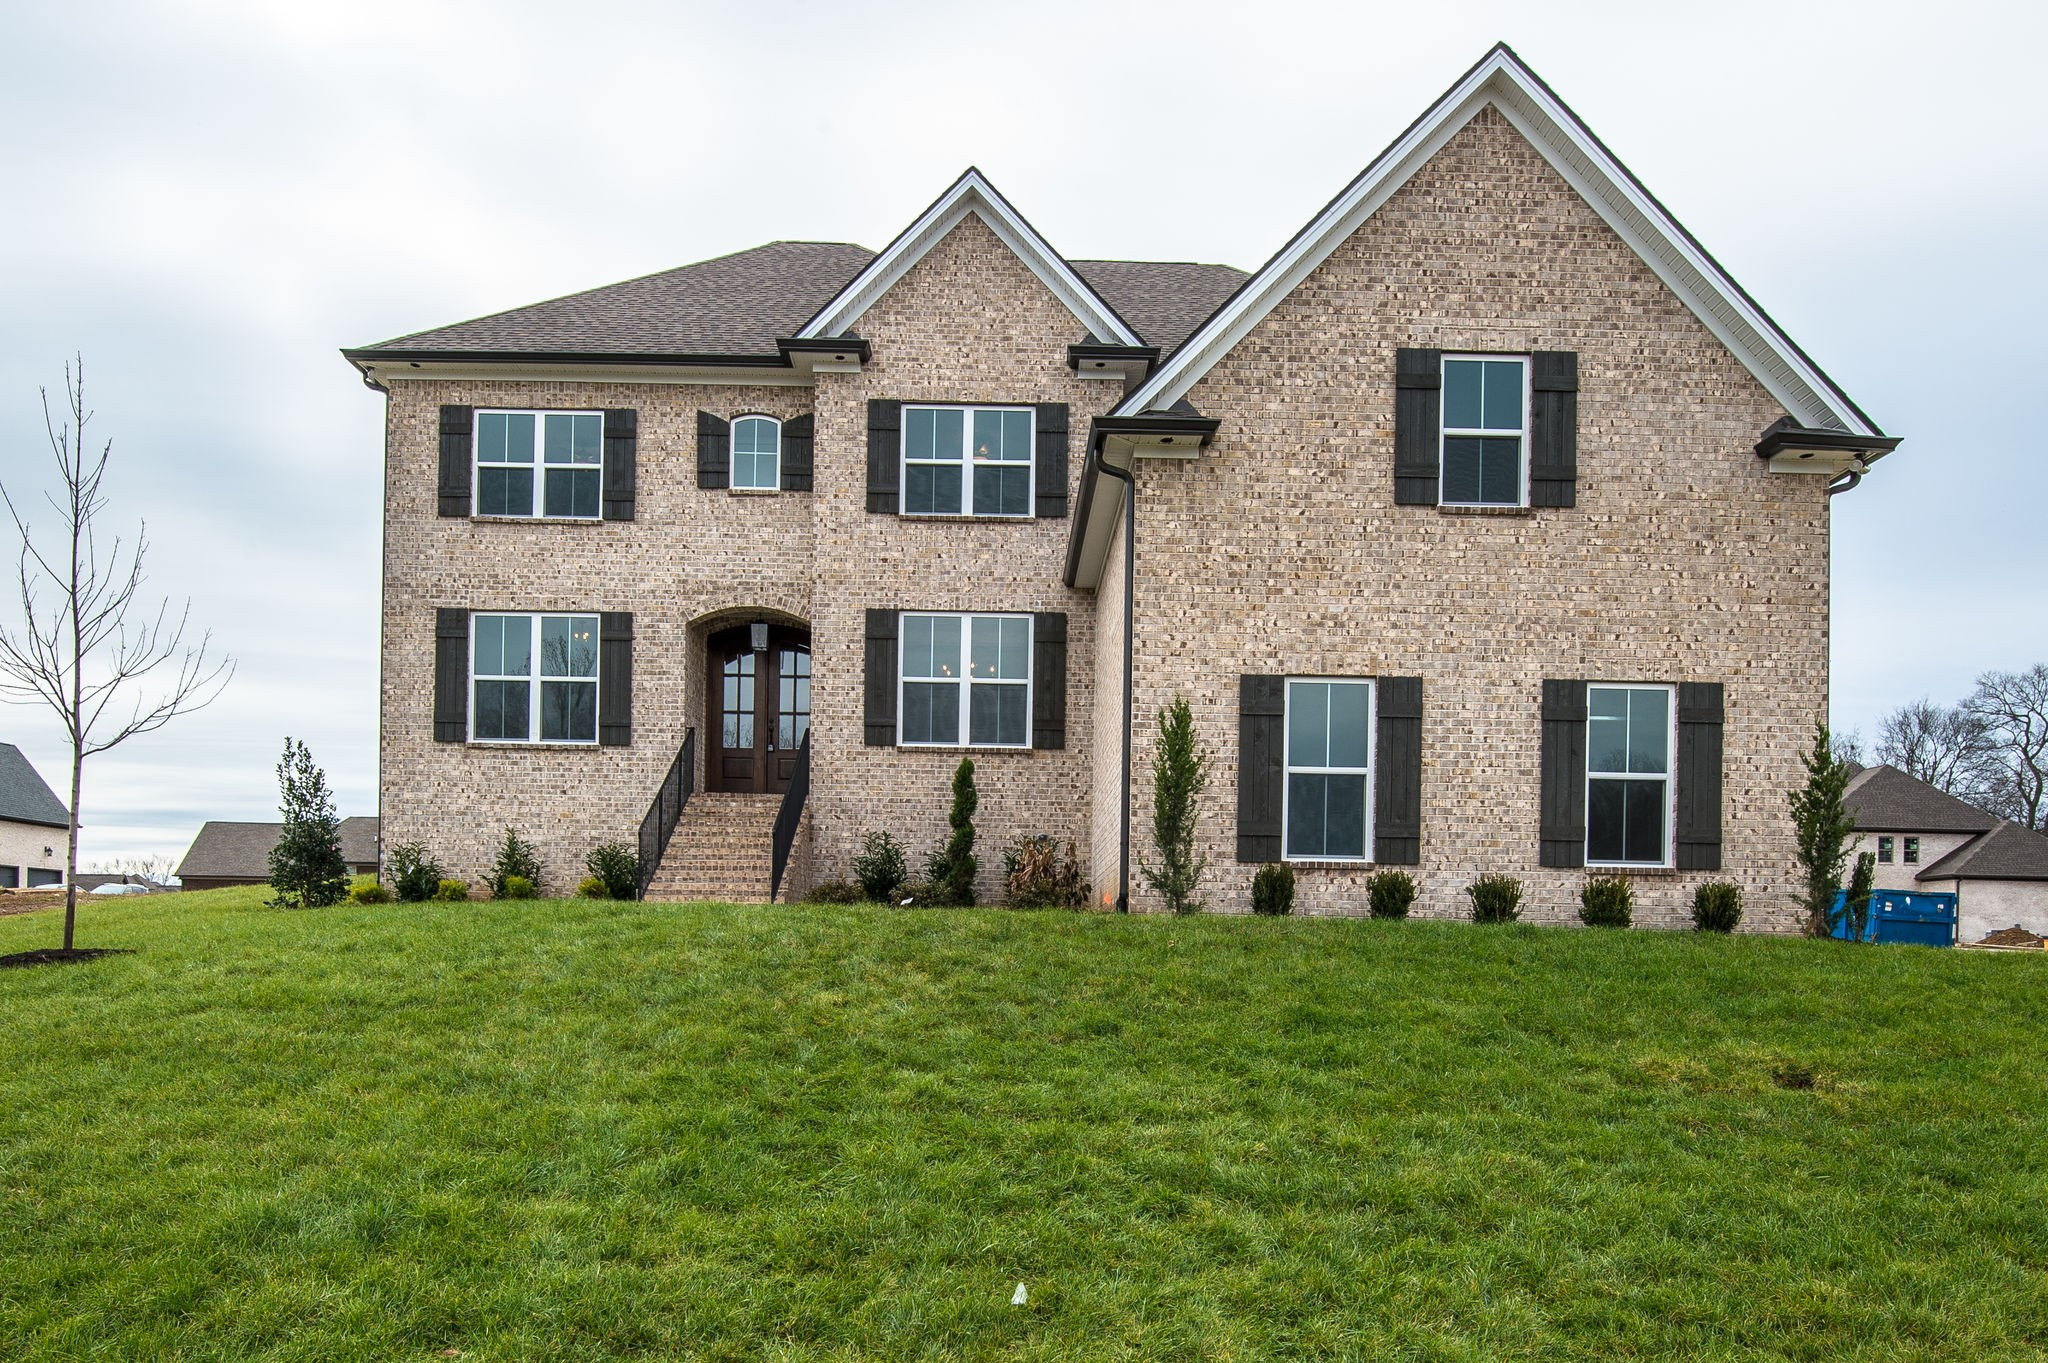 5015 Wallaby Dr (358), Spring Hill, TN 37174 - Spring Hill, TN real estate listing